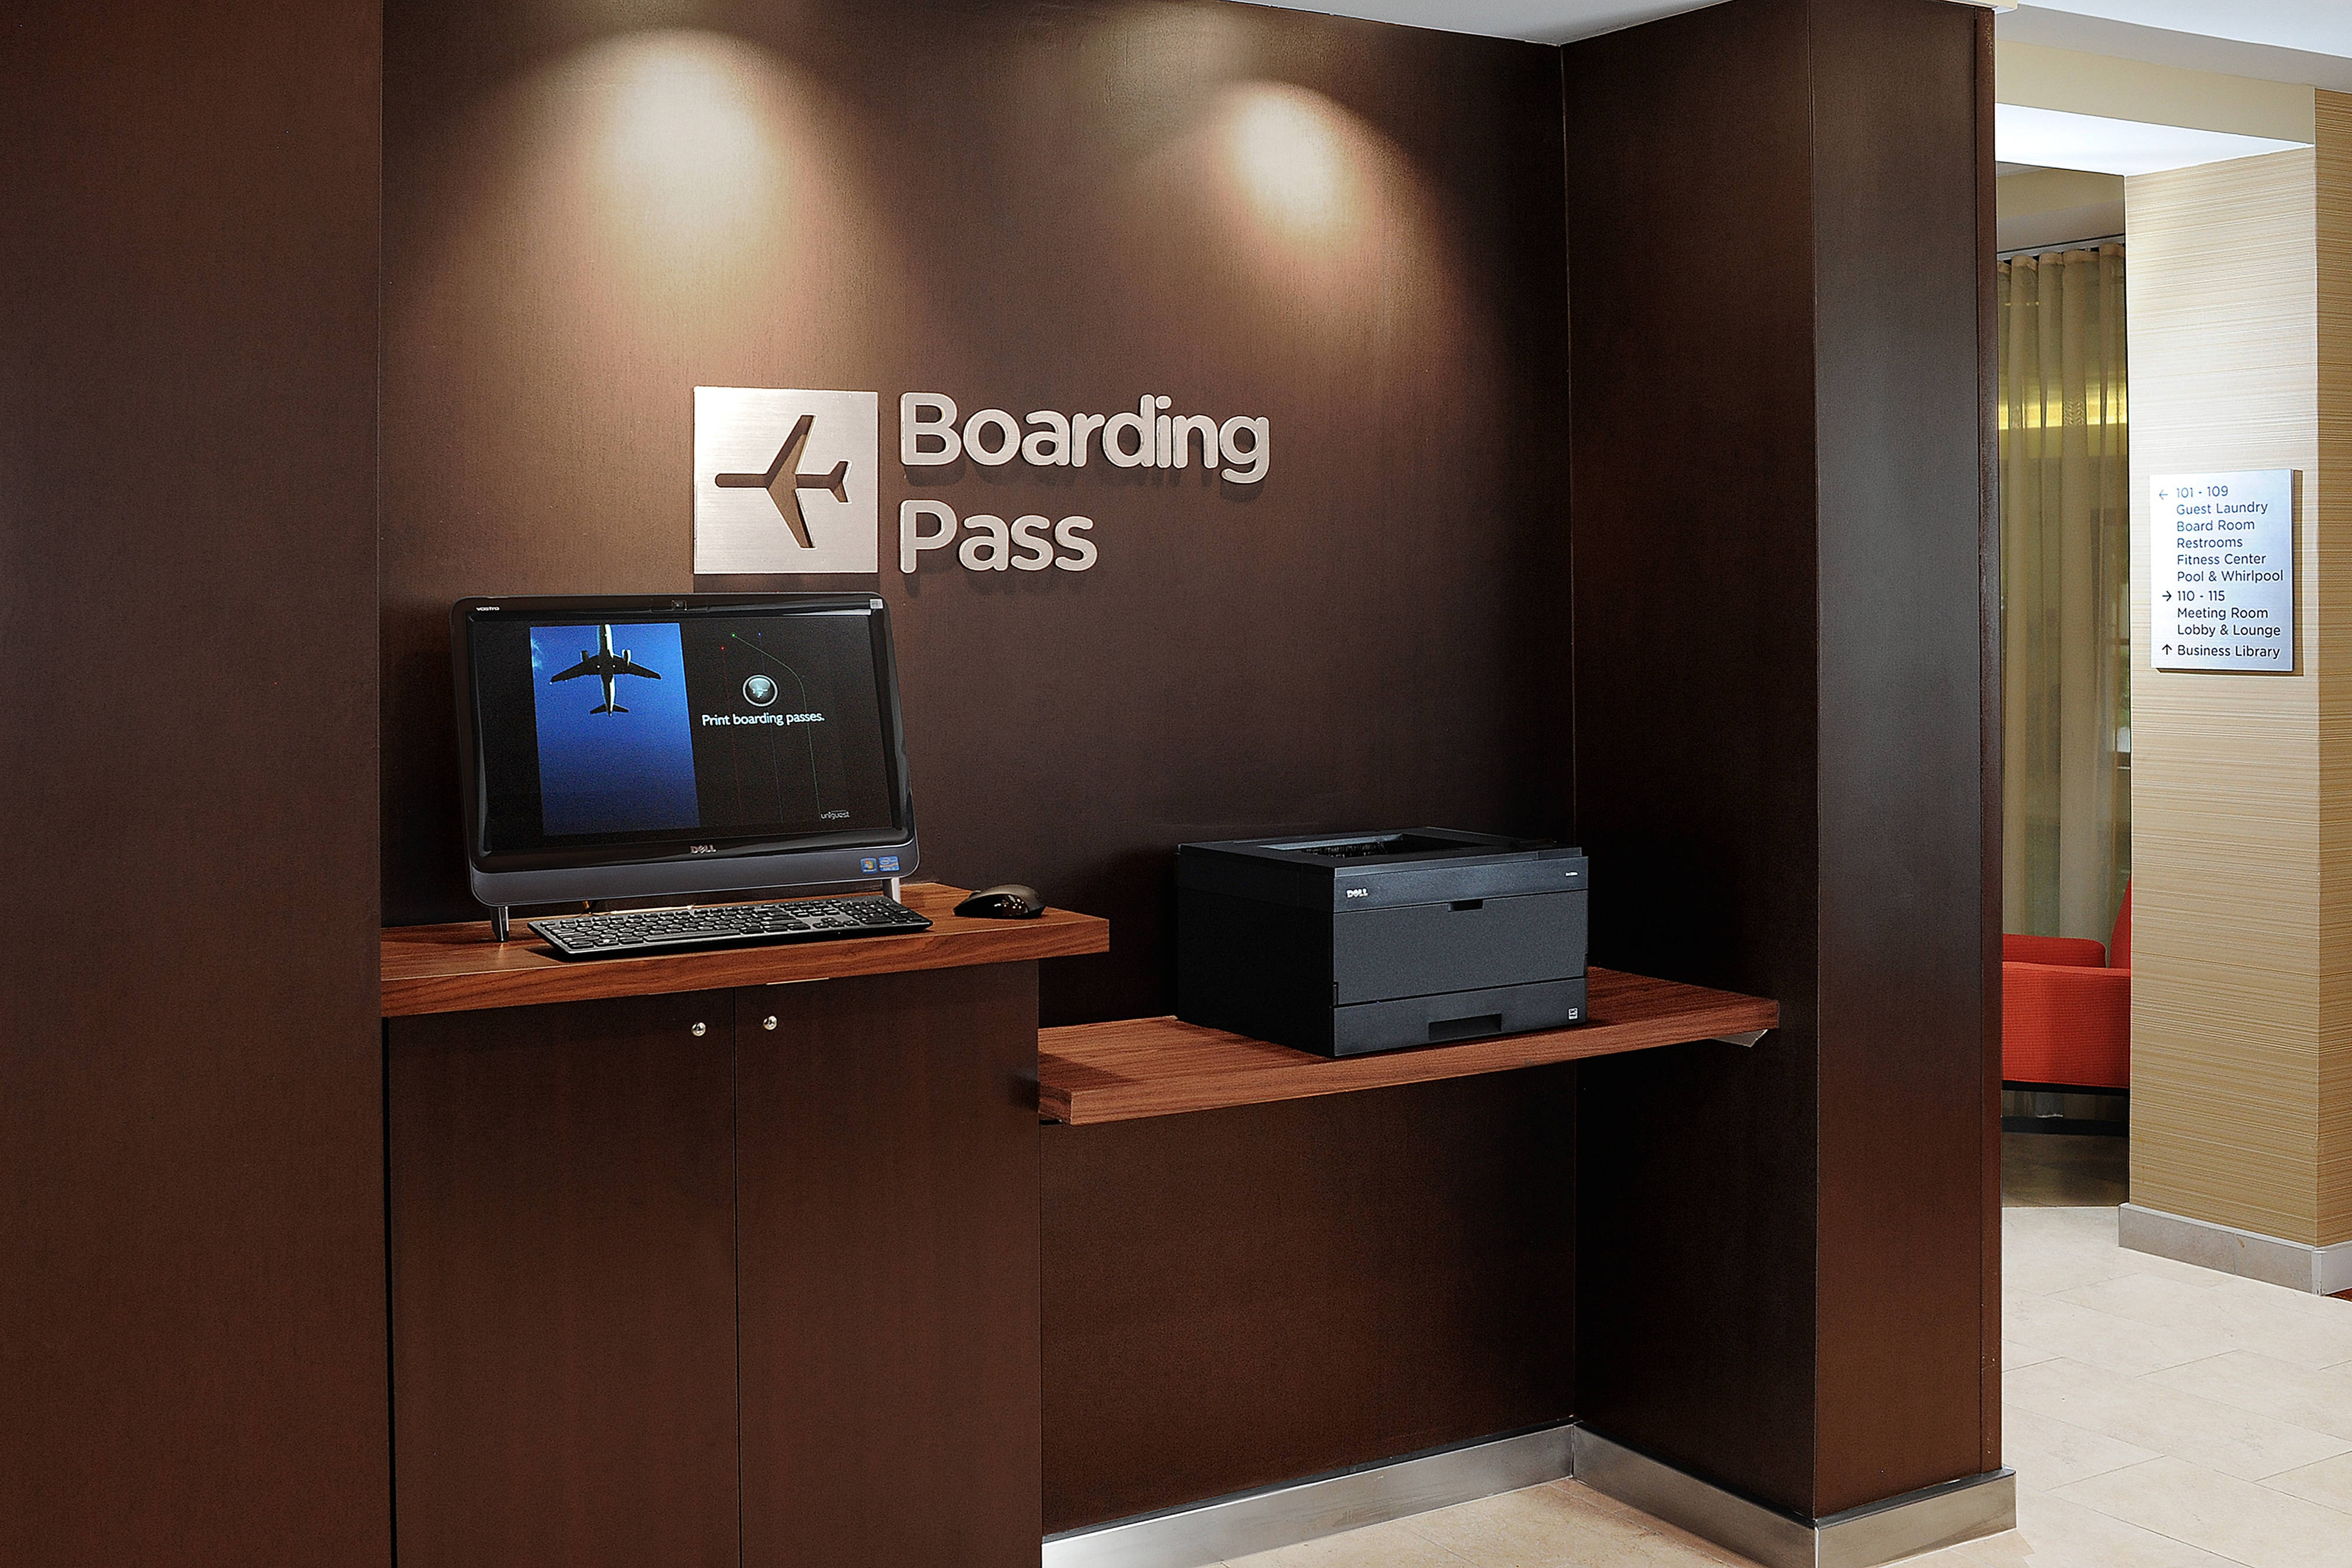 Our boarding pass station makes the trip home easier with complimentary printing for boarding passes.